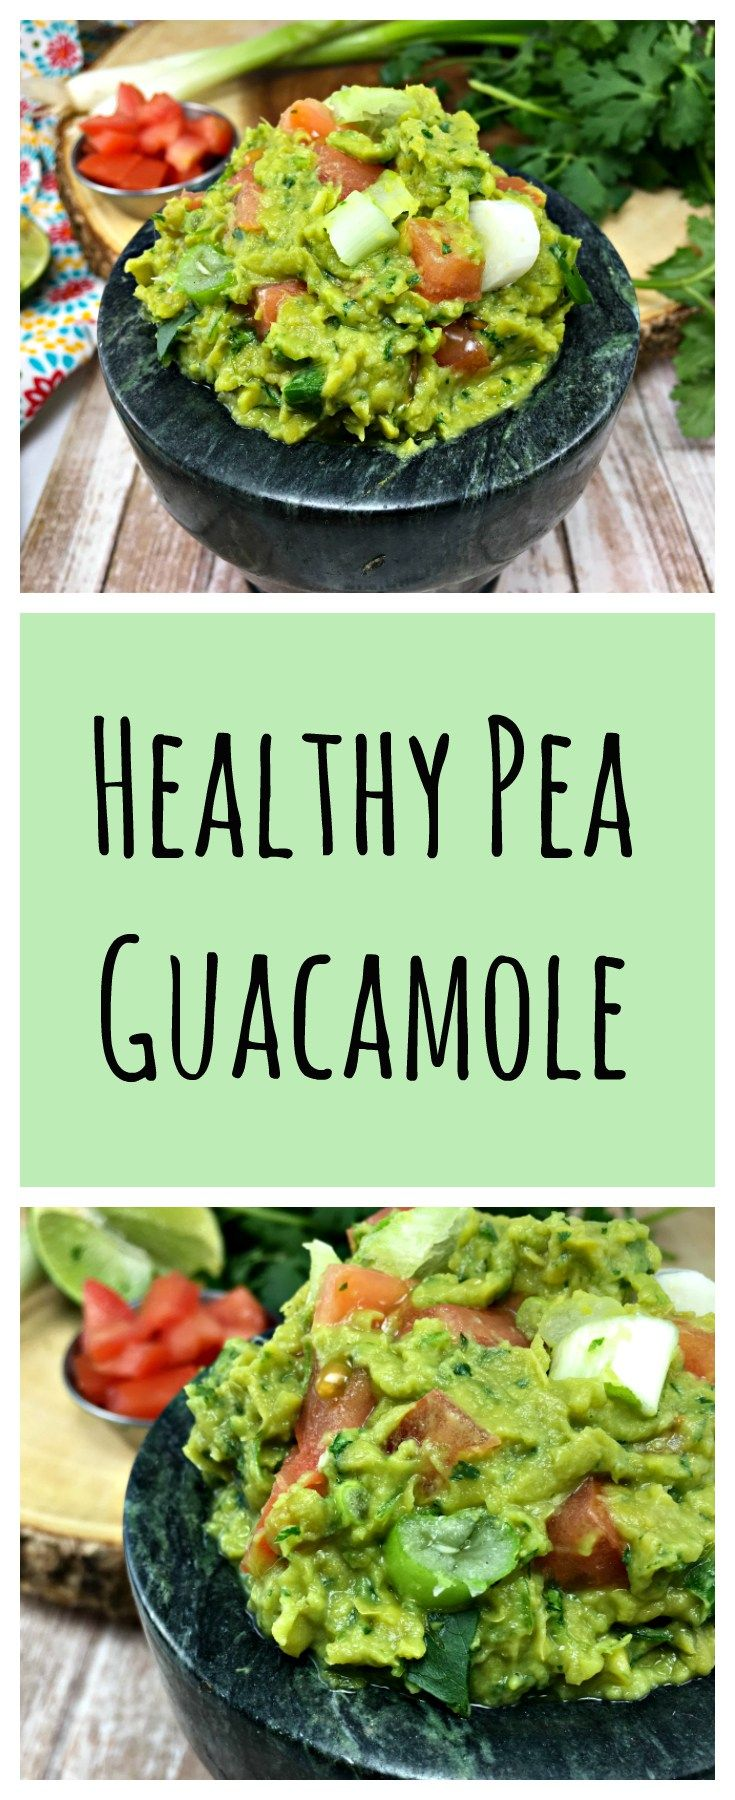 Pea Guacamole, fat-free, low calorie, high protein and super creamy